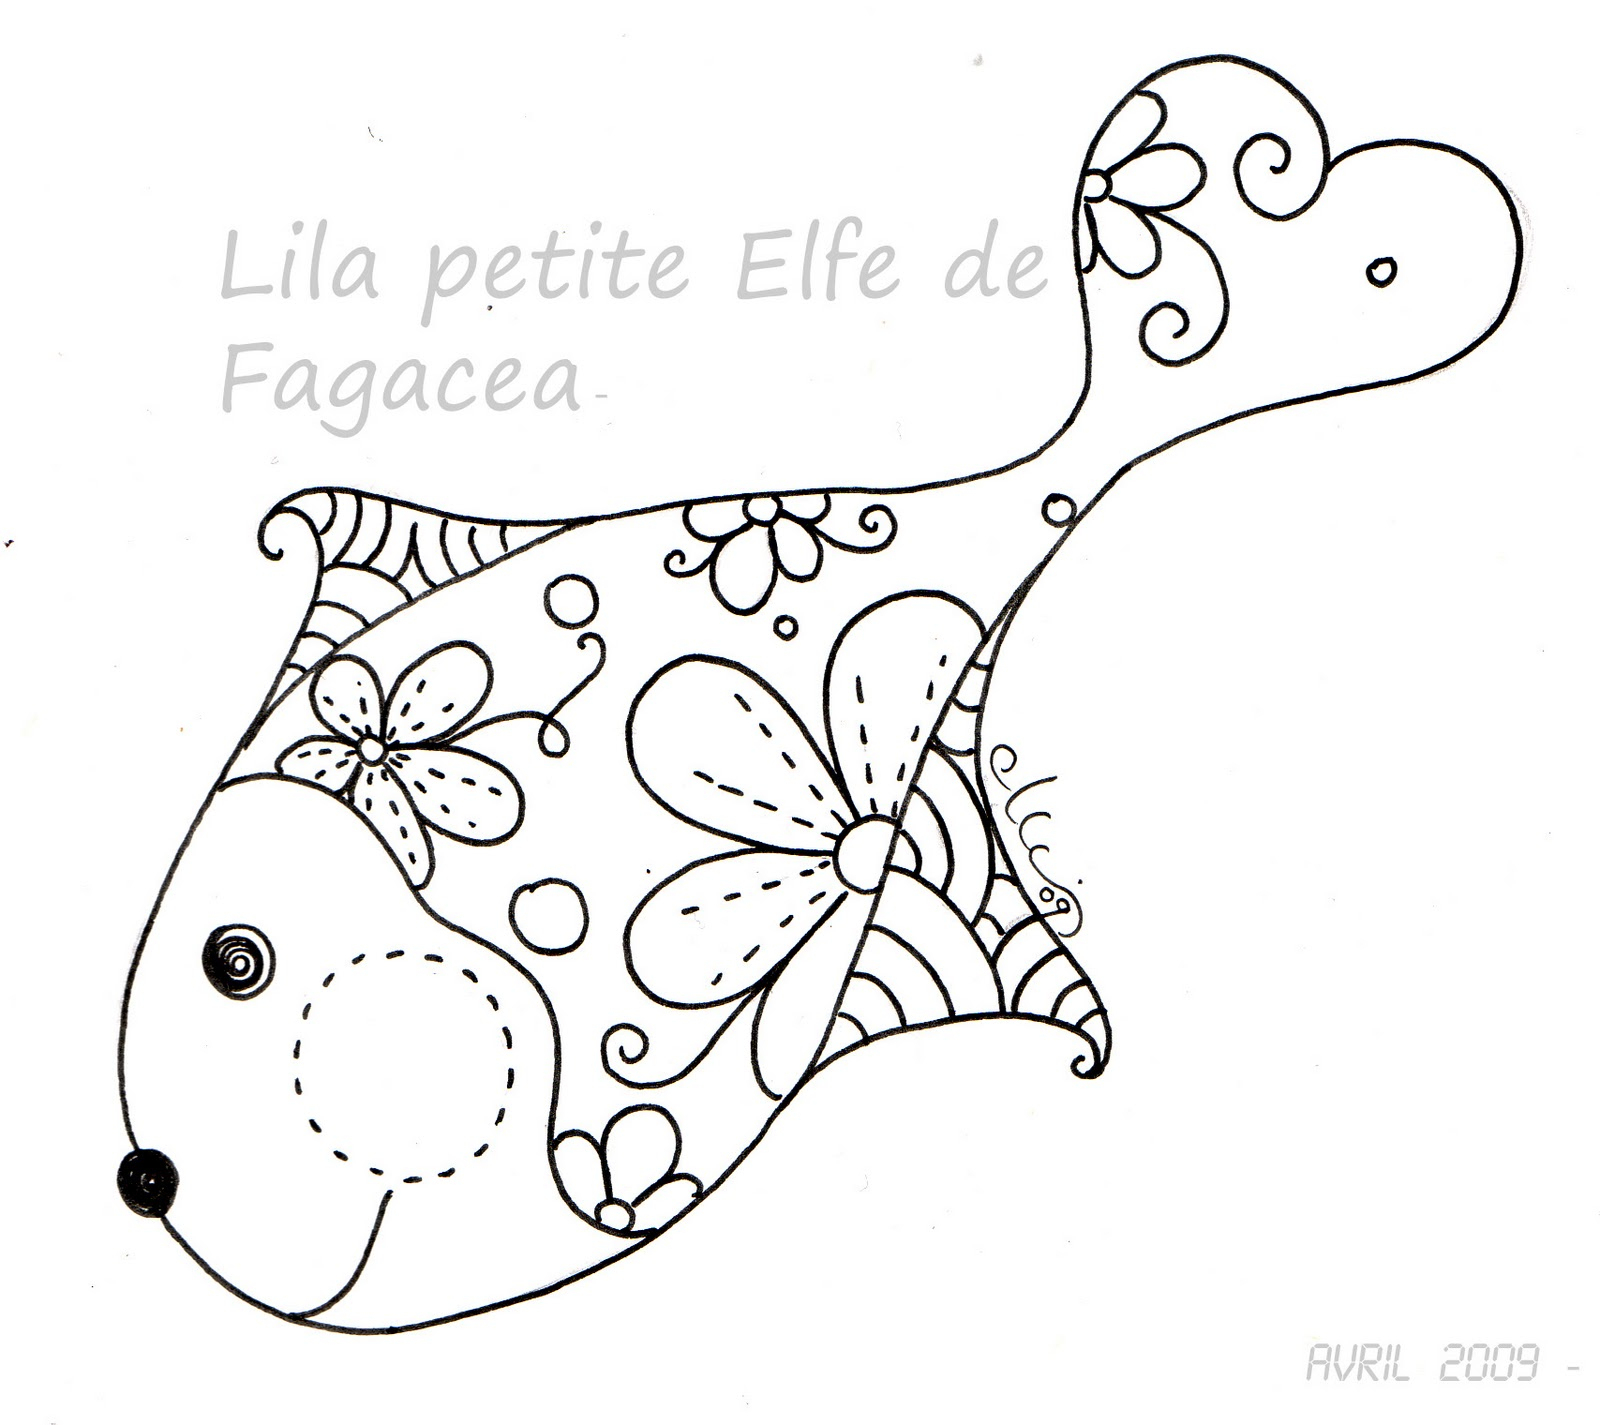 Coloriage Poisson D'Avril Deja Colorier serapportantà Poisson D Avril Coloriage A Imprimer